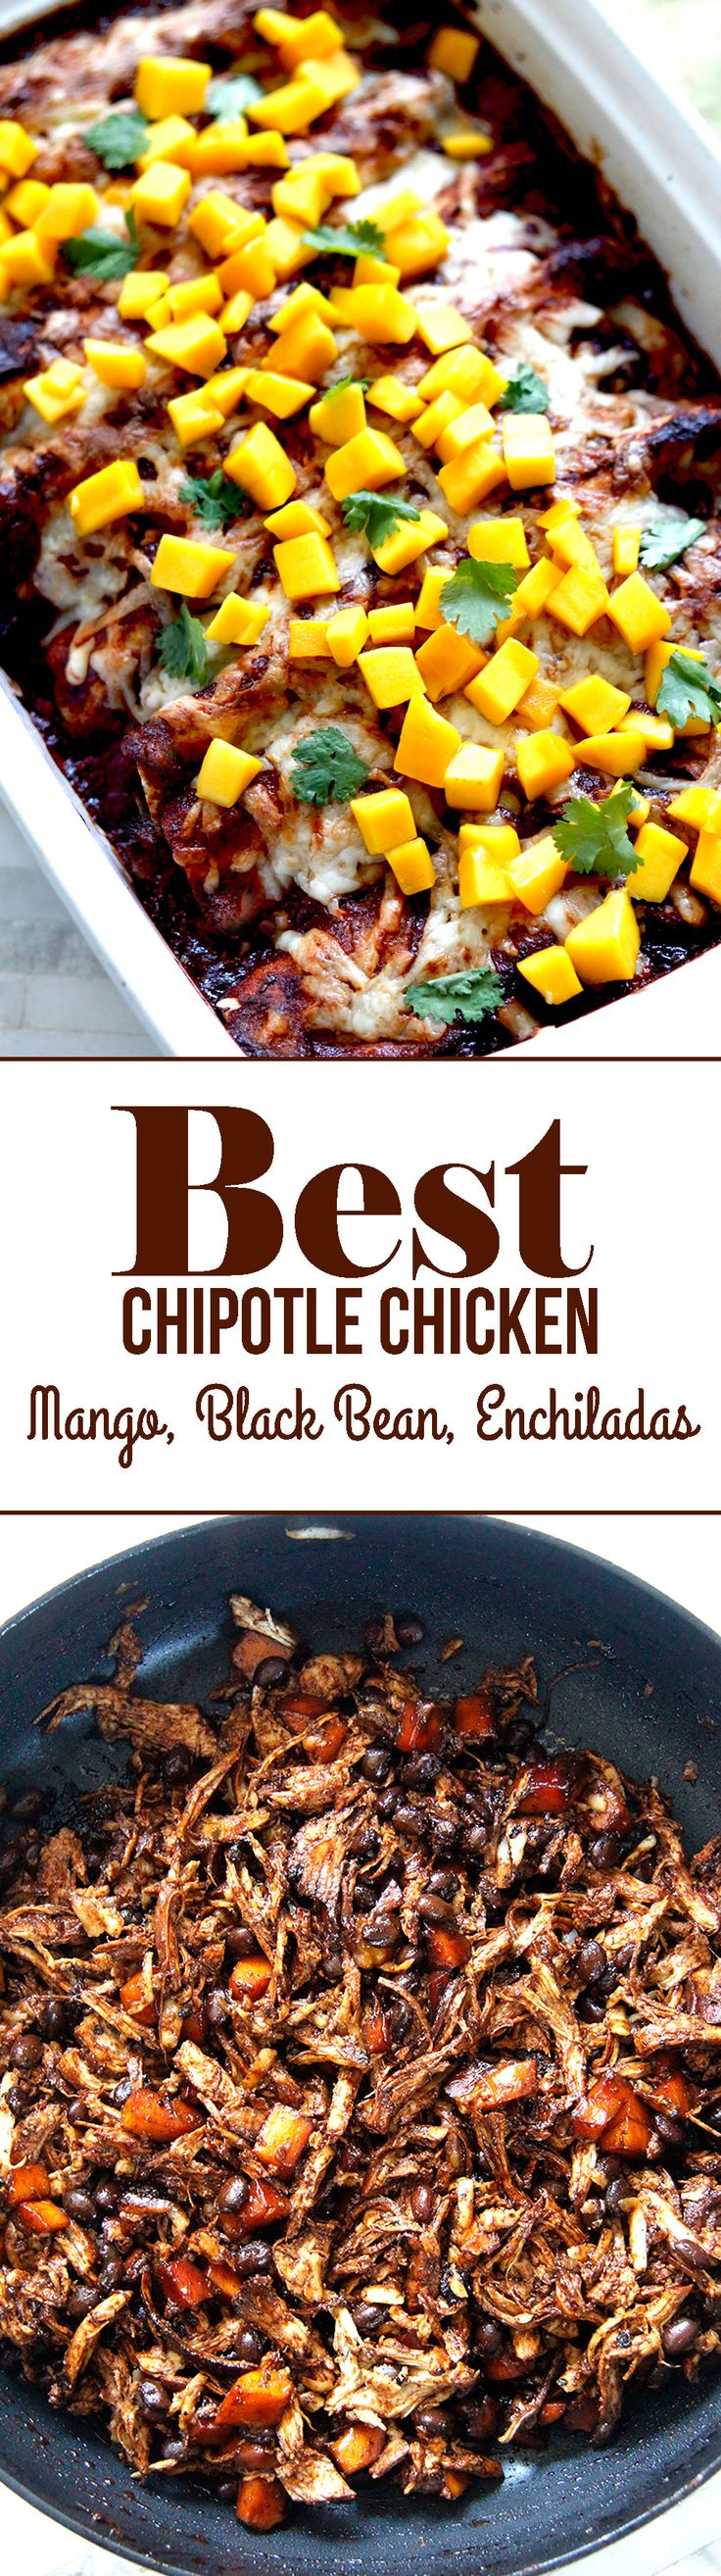 Chipotle Chicken, Mango, Black Bean Enchiladas - seriously the BEST chicken enchiladas with rave reviews.  Sweet, savory and spicy in tantalizing red Coke enchilada sauce.  #chickenenchiladas #enchiladas #chipotlechicken